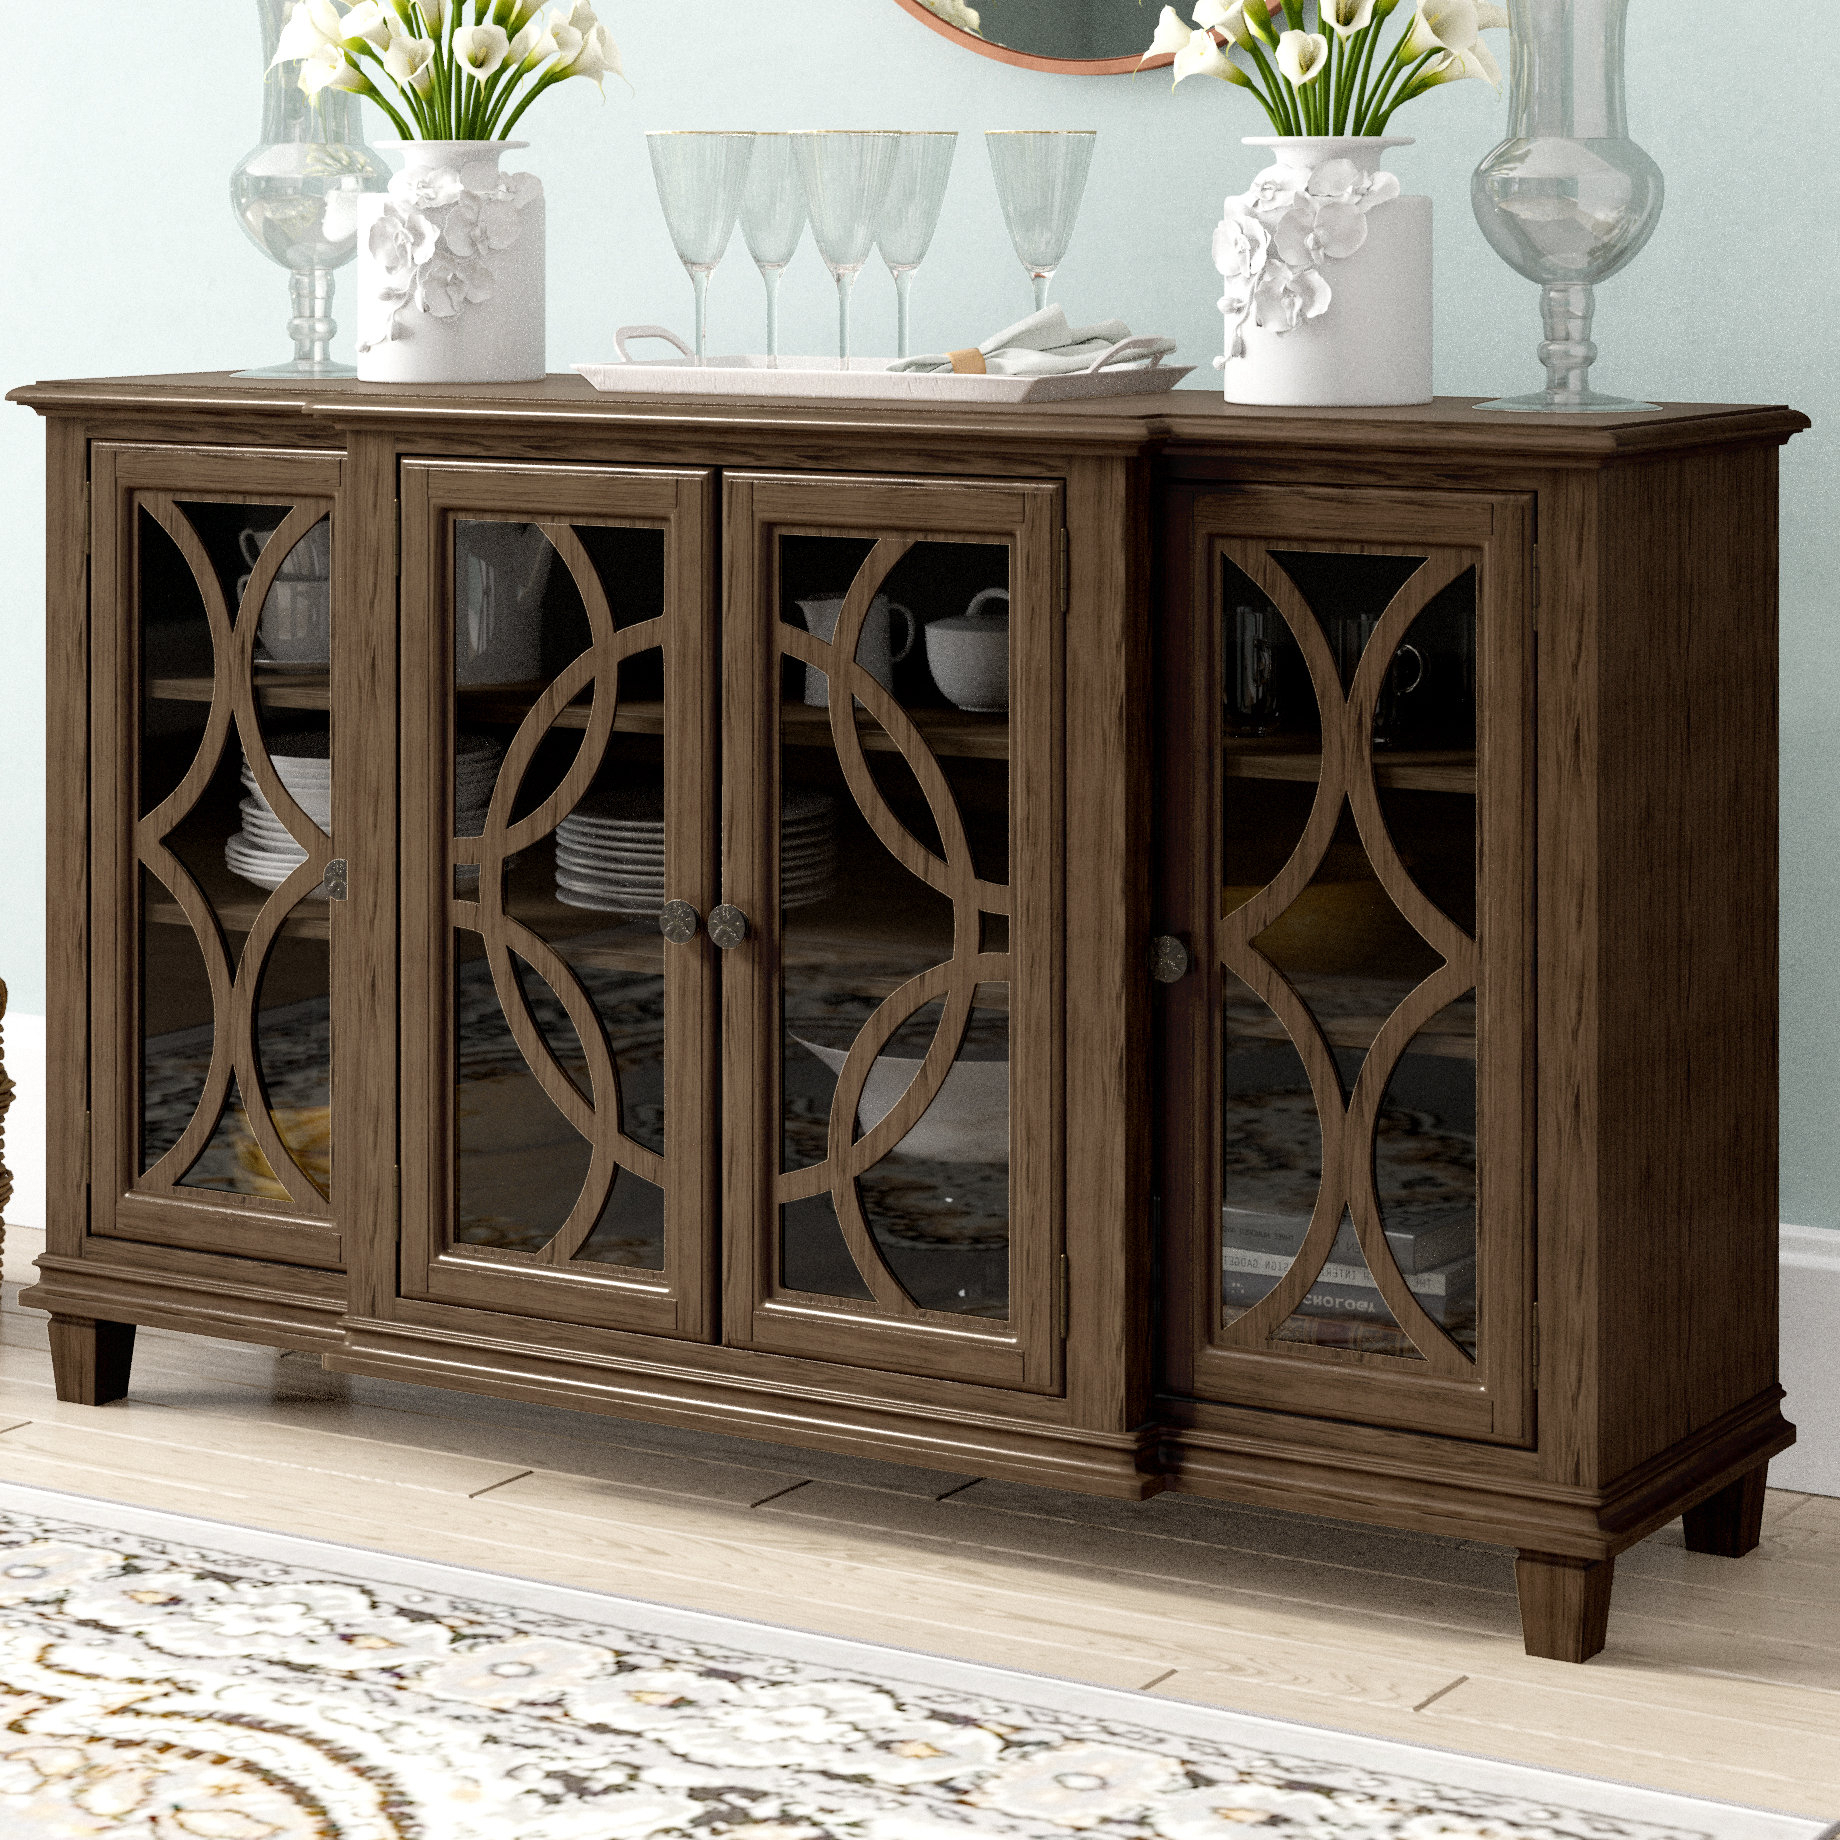 Farmhouse & Rustic Dark Brown Wood Sideboards & Buffets Within Current Phyllis Sideboards (View 6 of 20)